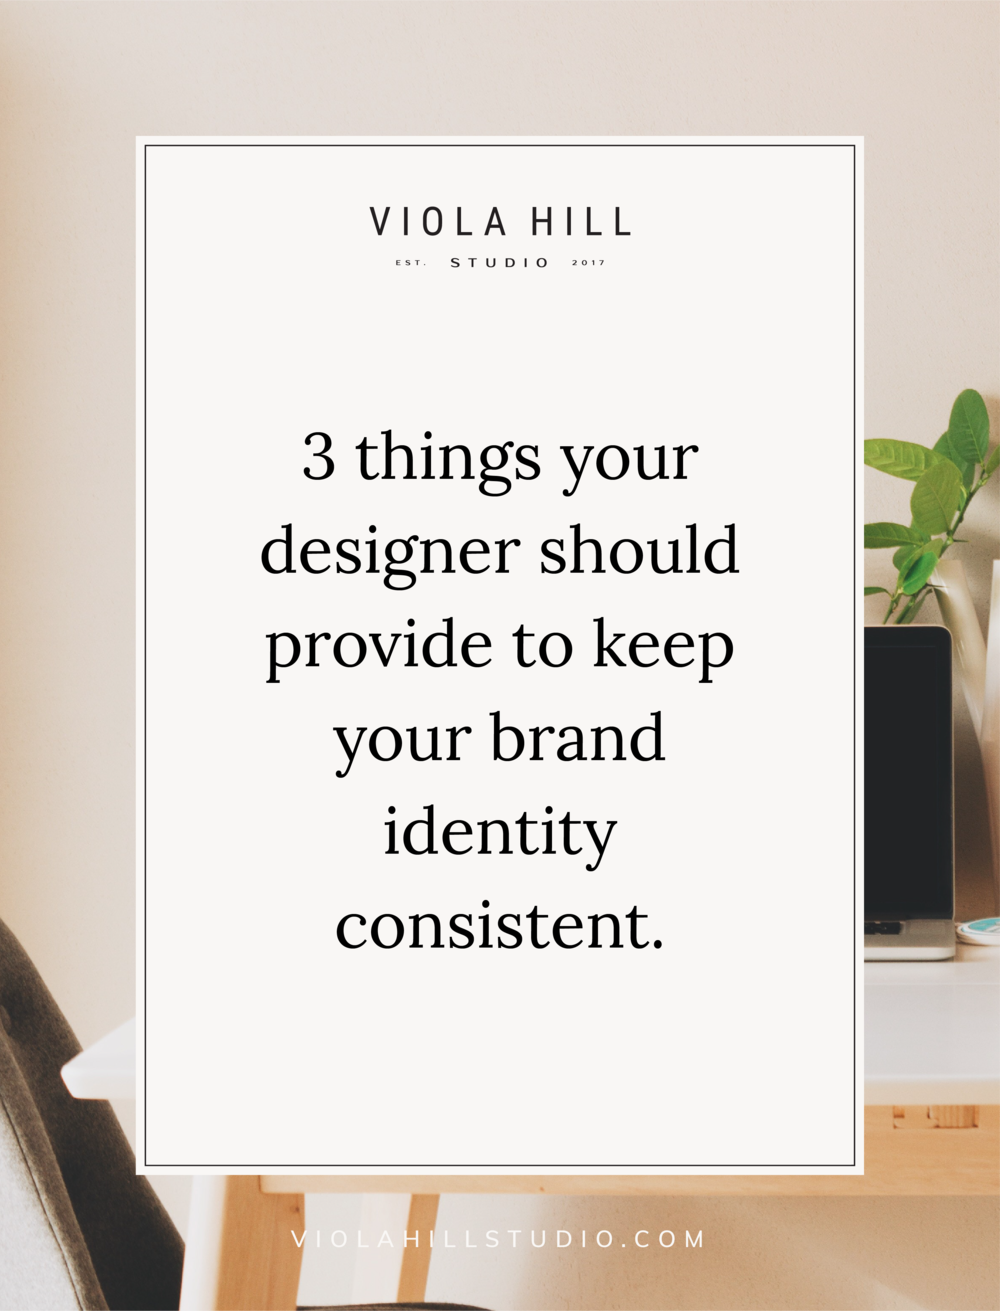 3-things-your-designer-should-provide-to-keep-your-brand-identity-consistent.png